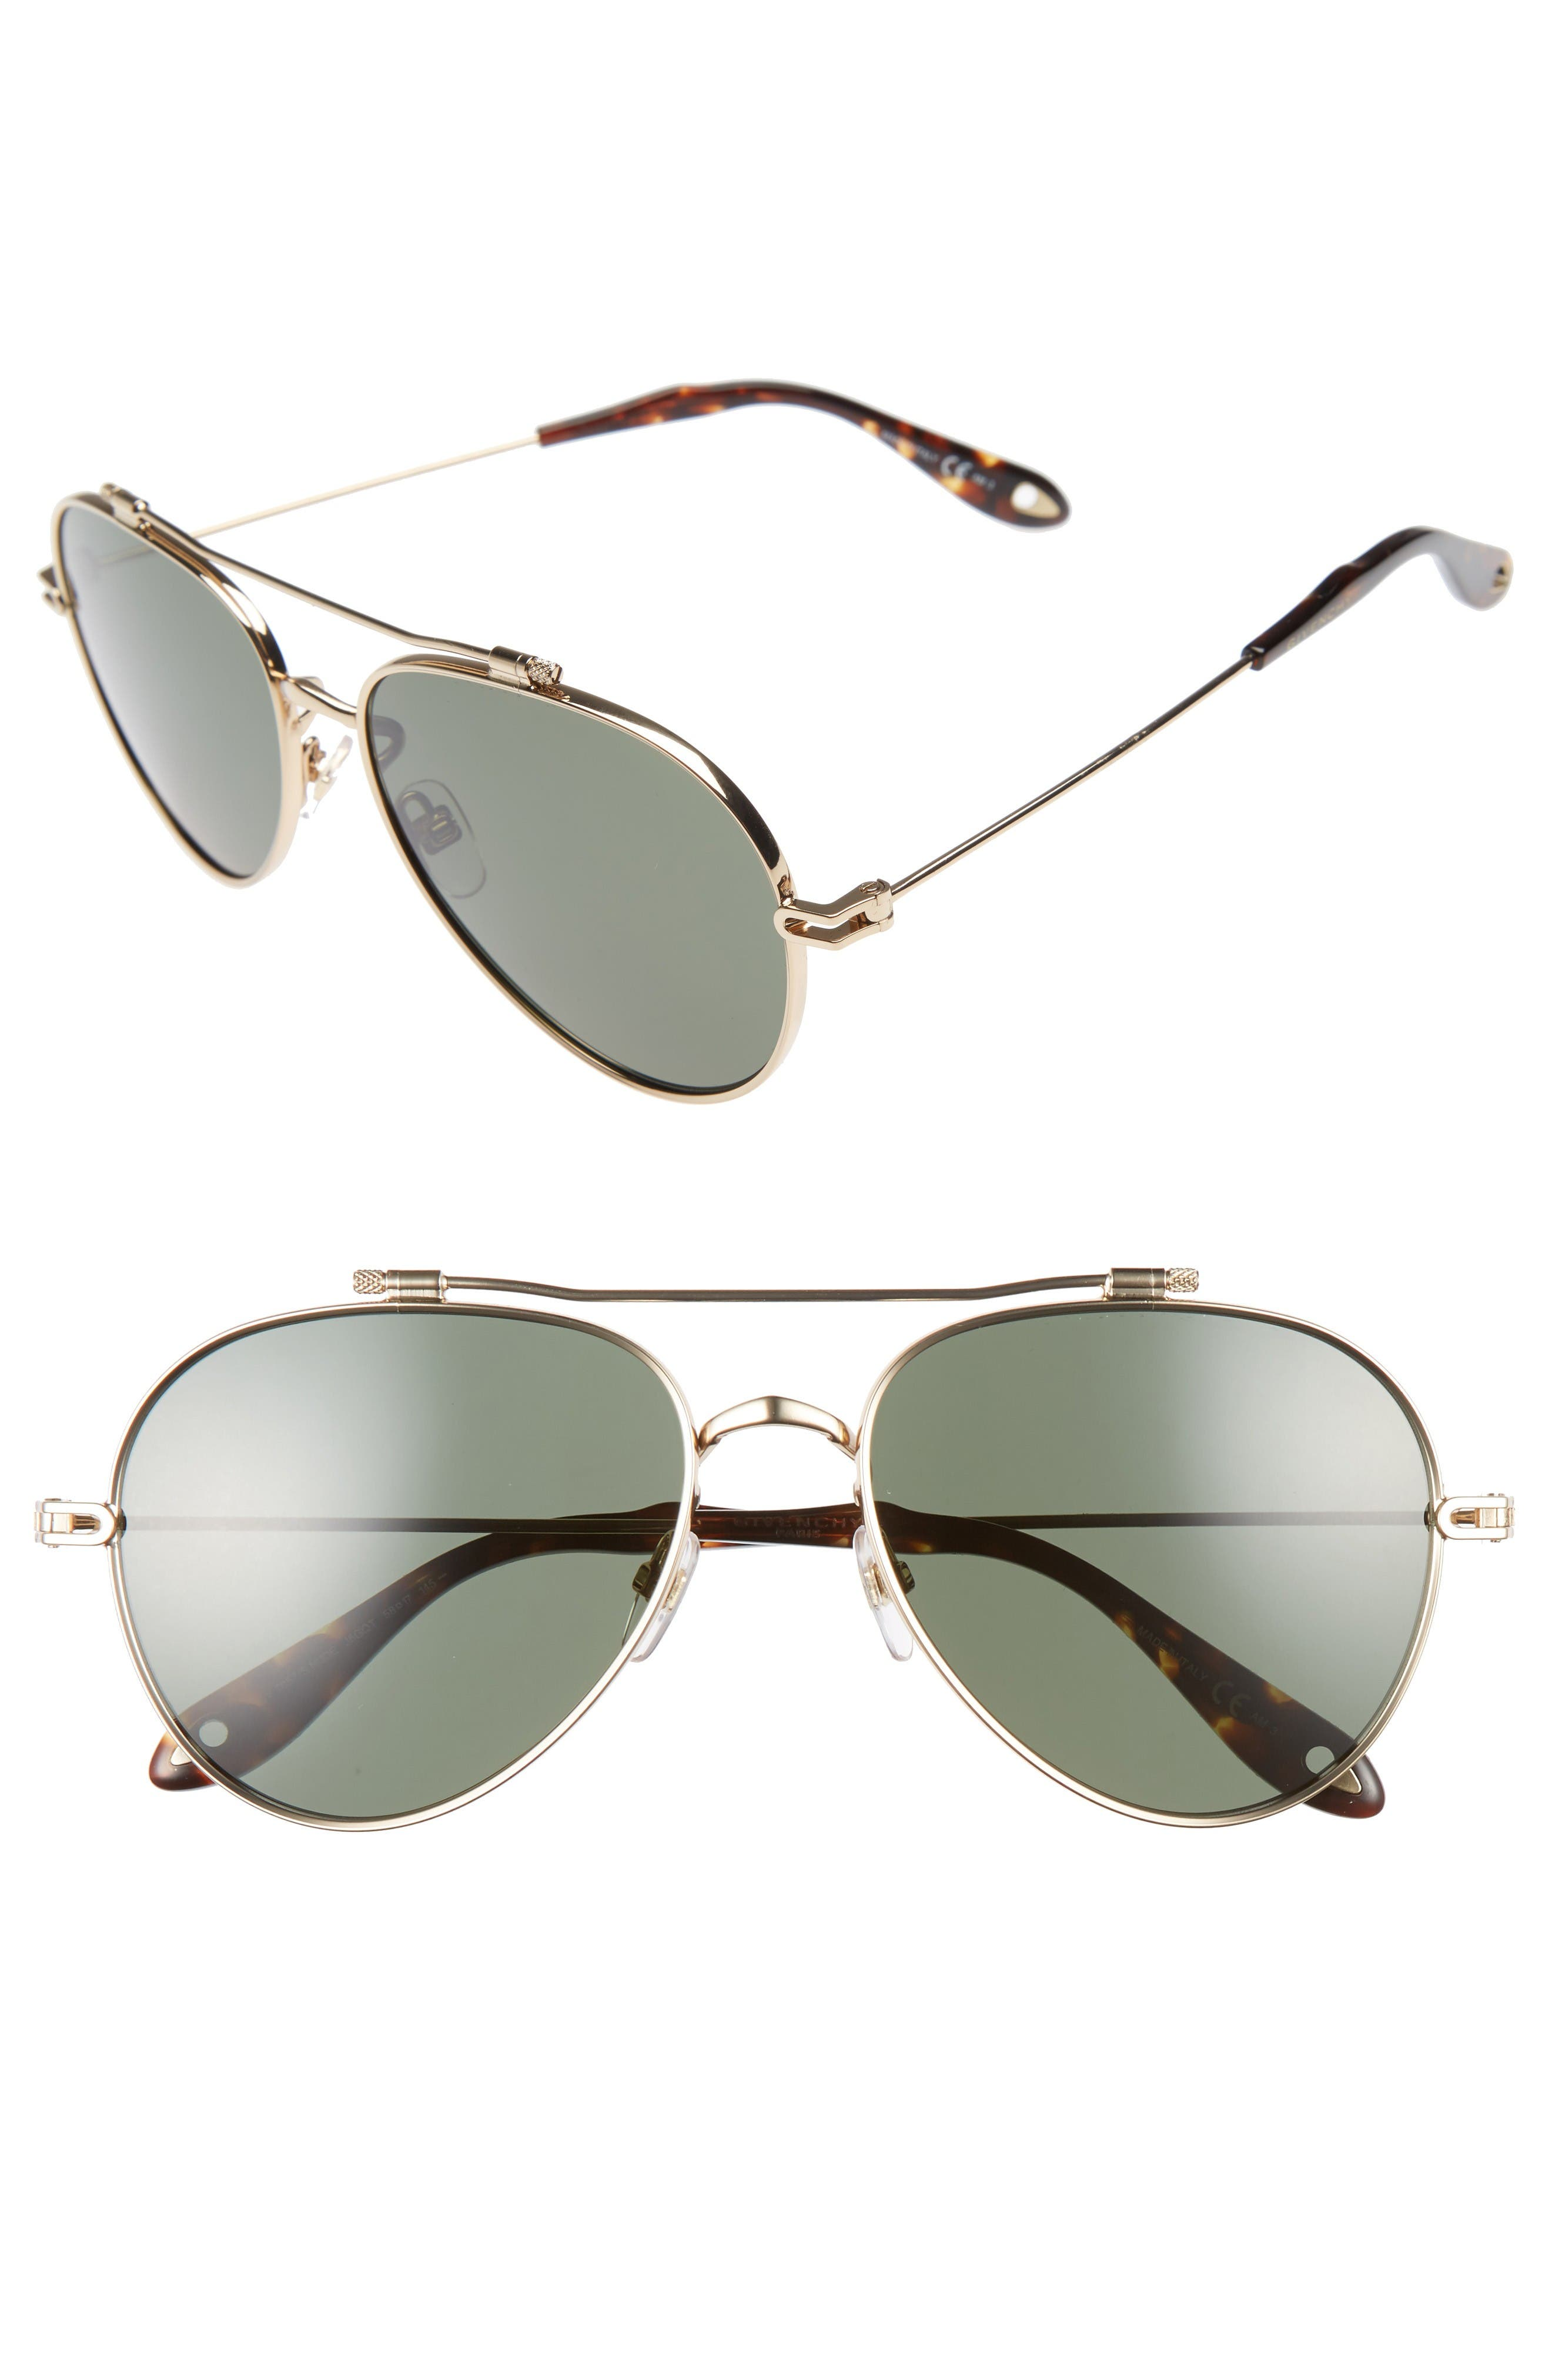 Givenchy 58mm Aviator Sunglasses